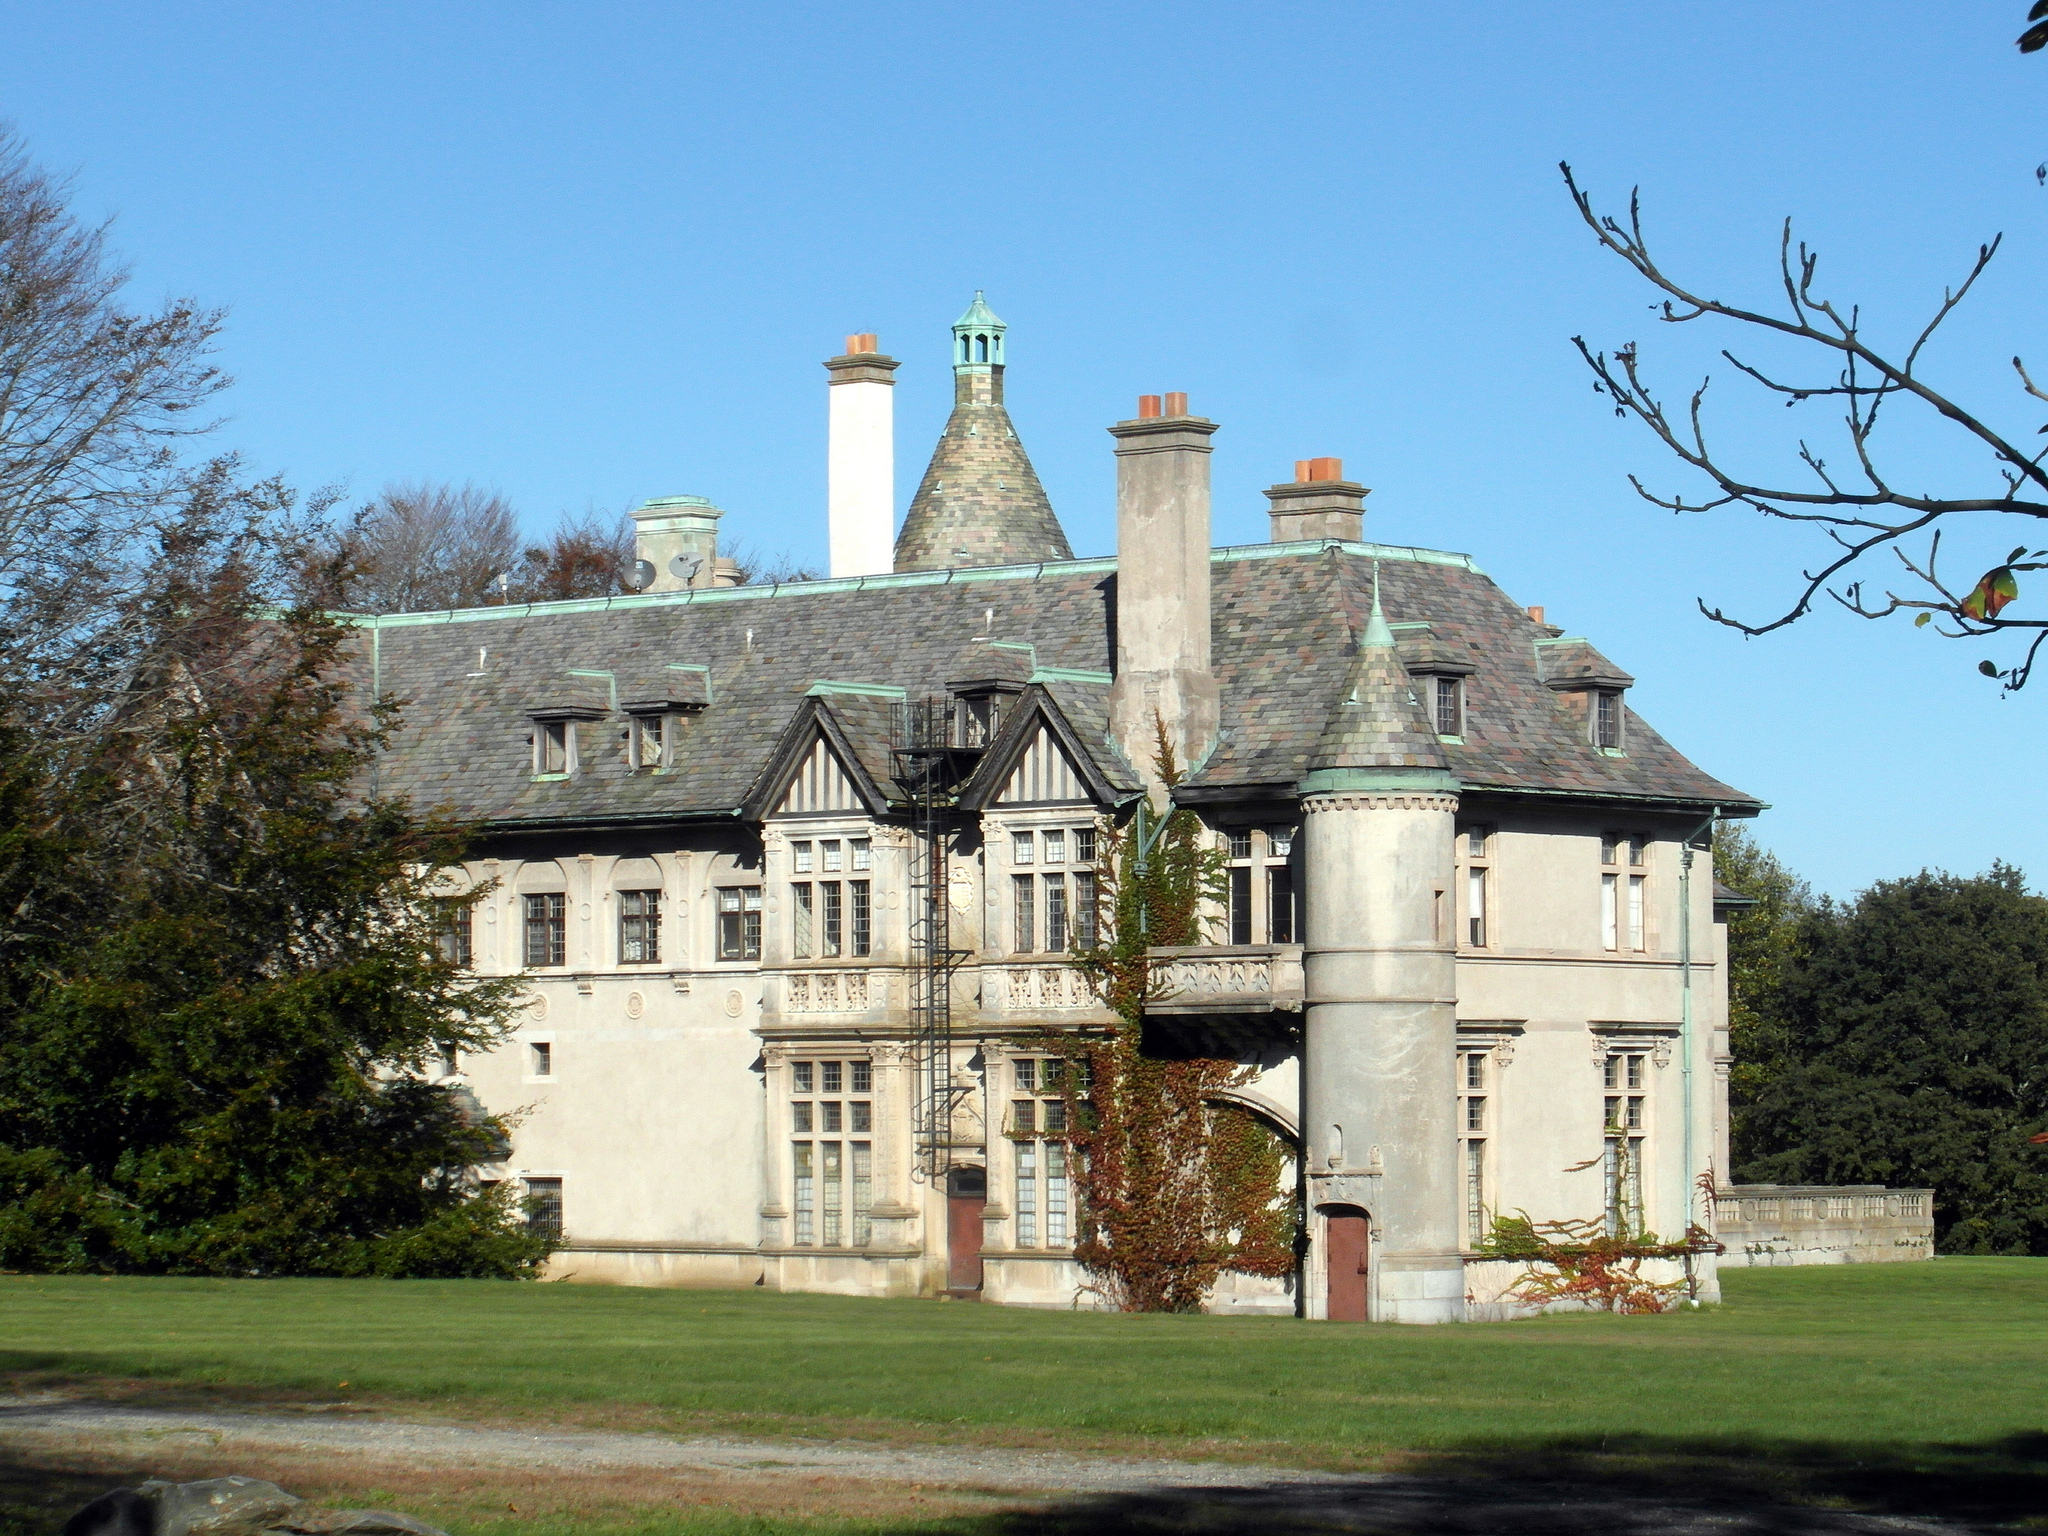 Newport Rhode Island Has An Insane Amount Of Paranormal Activity